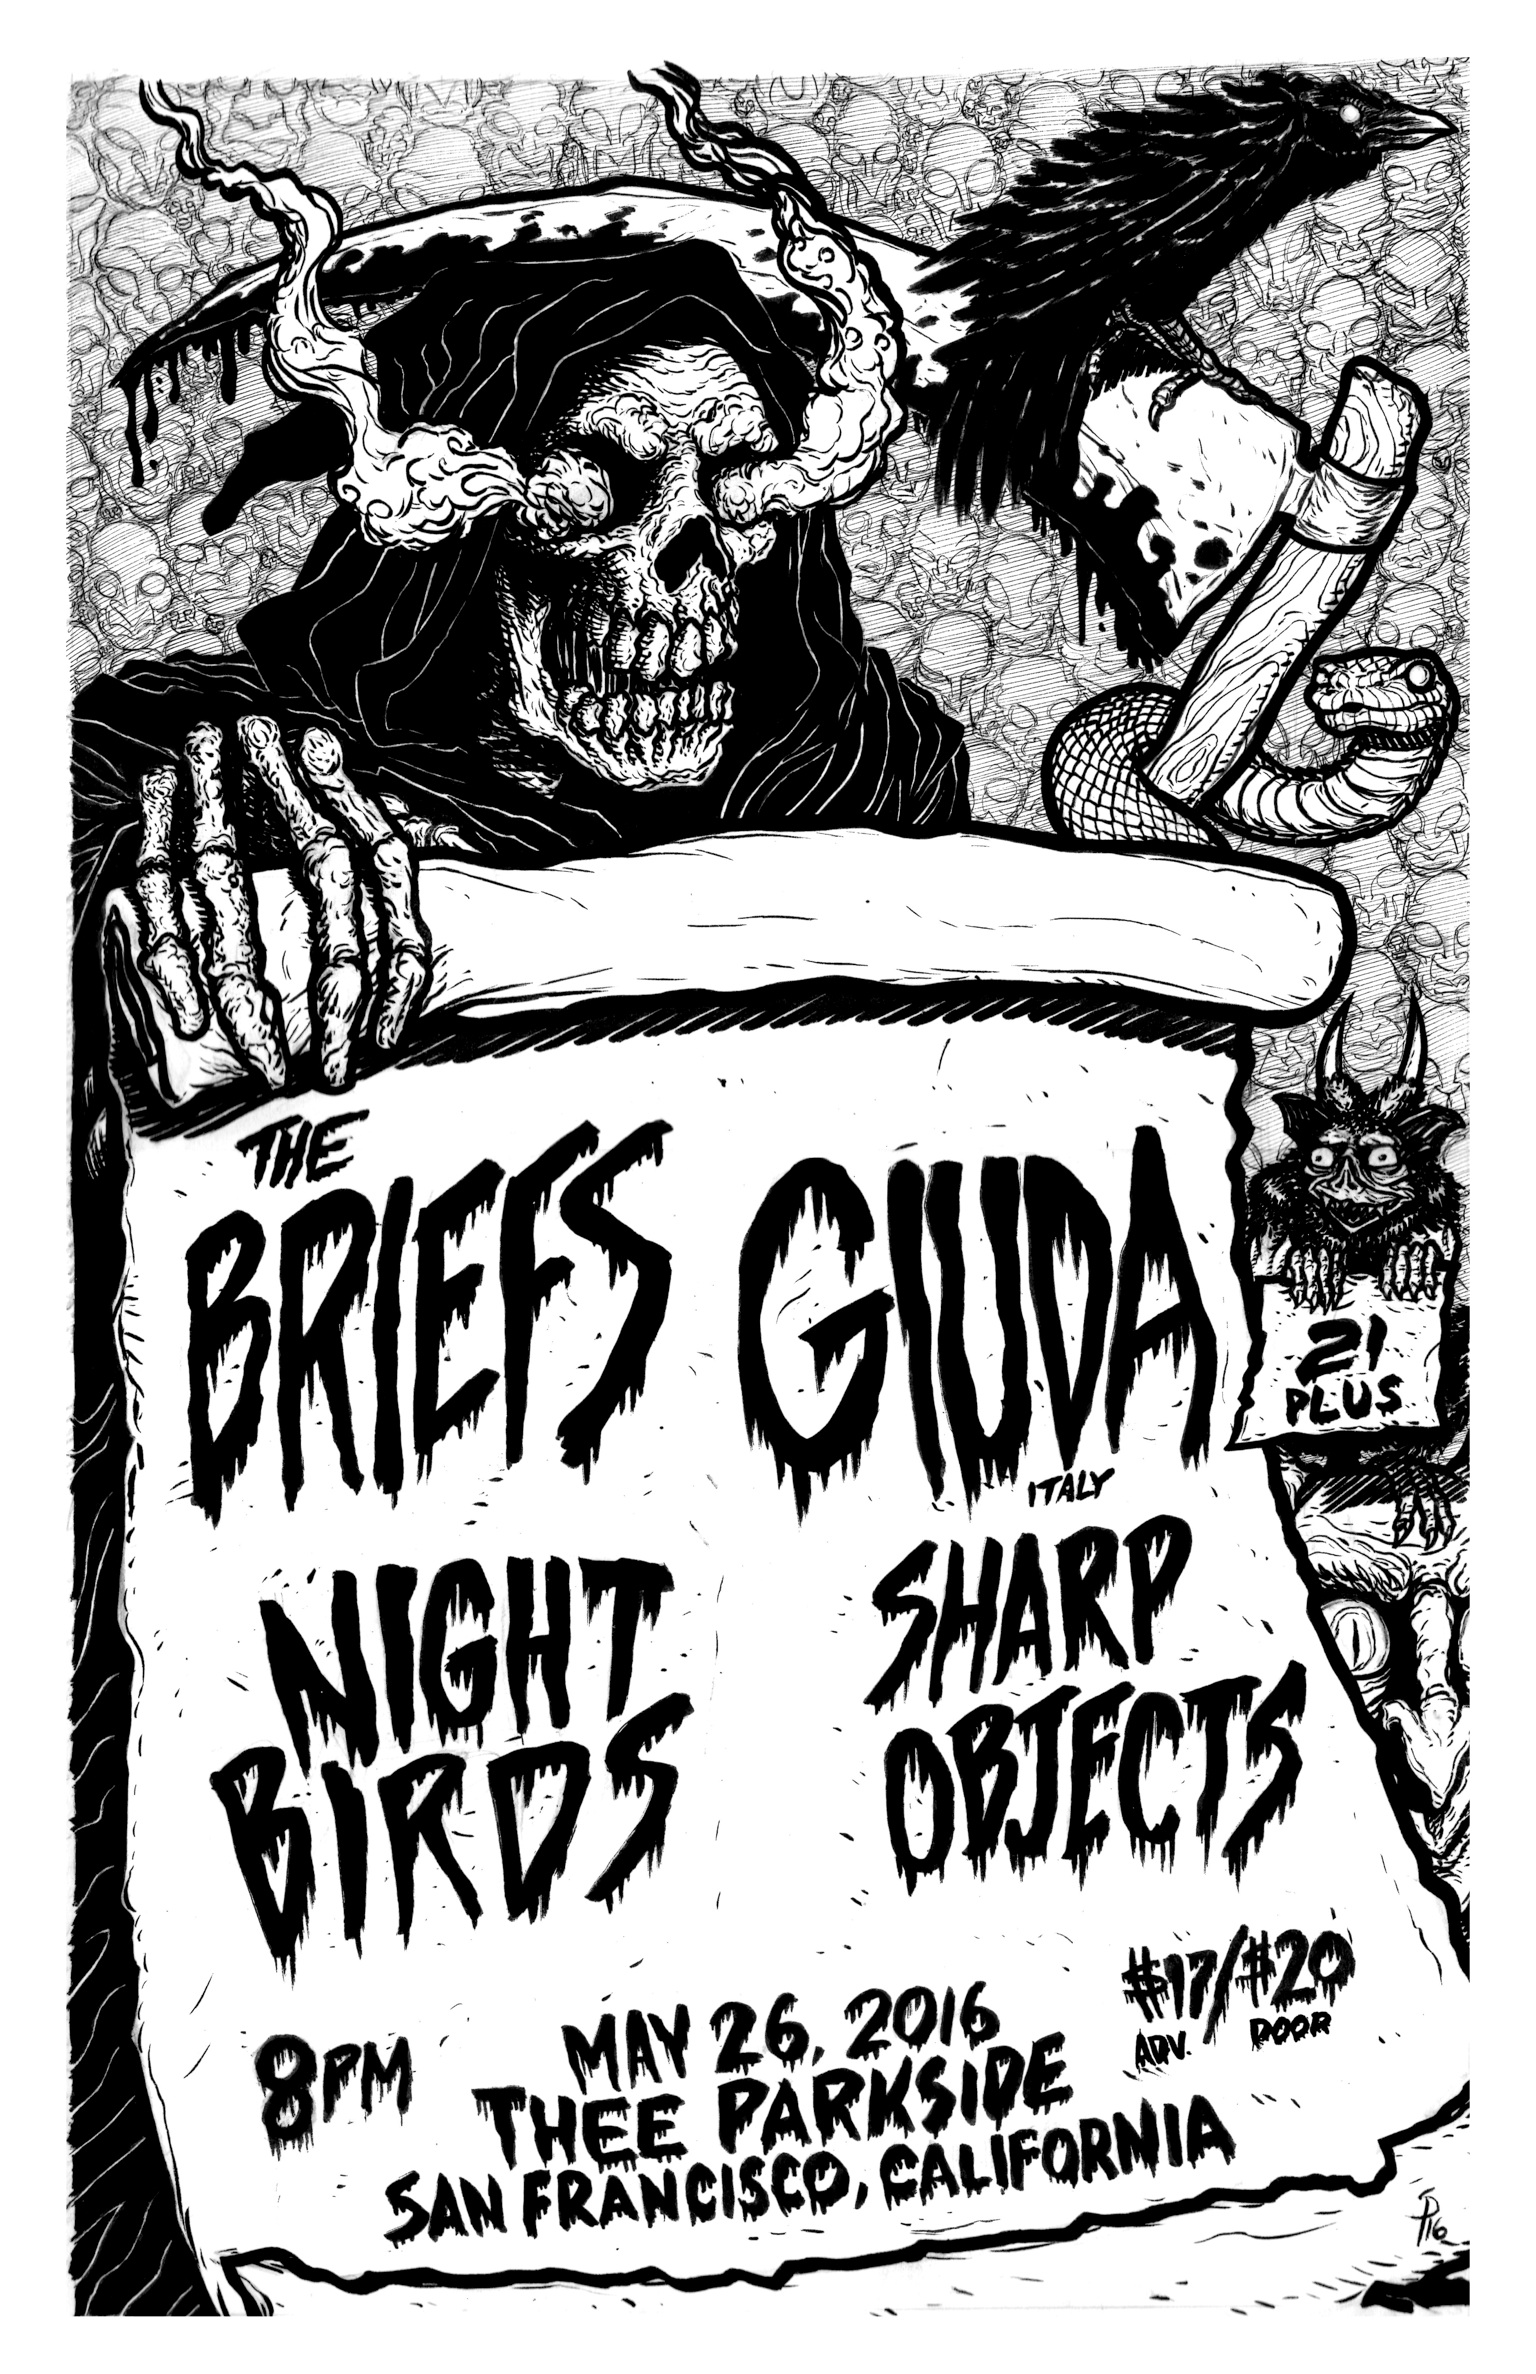 briefs giuda night birds